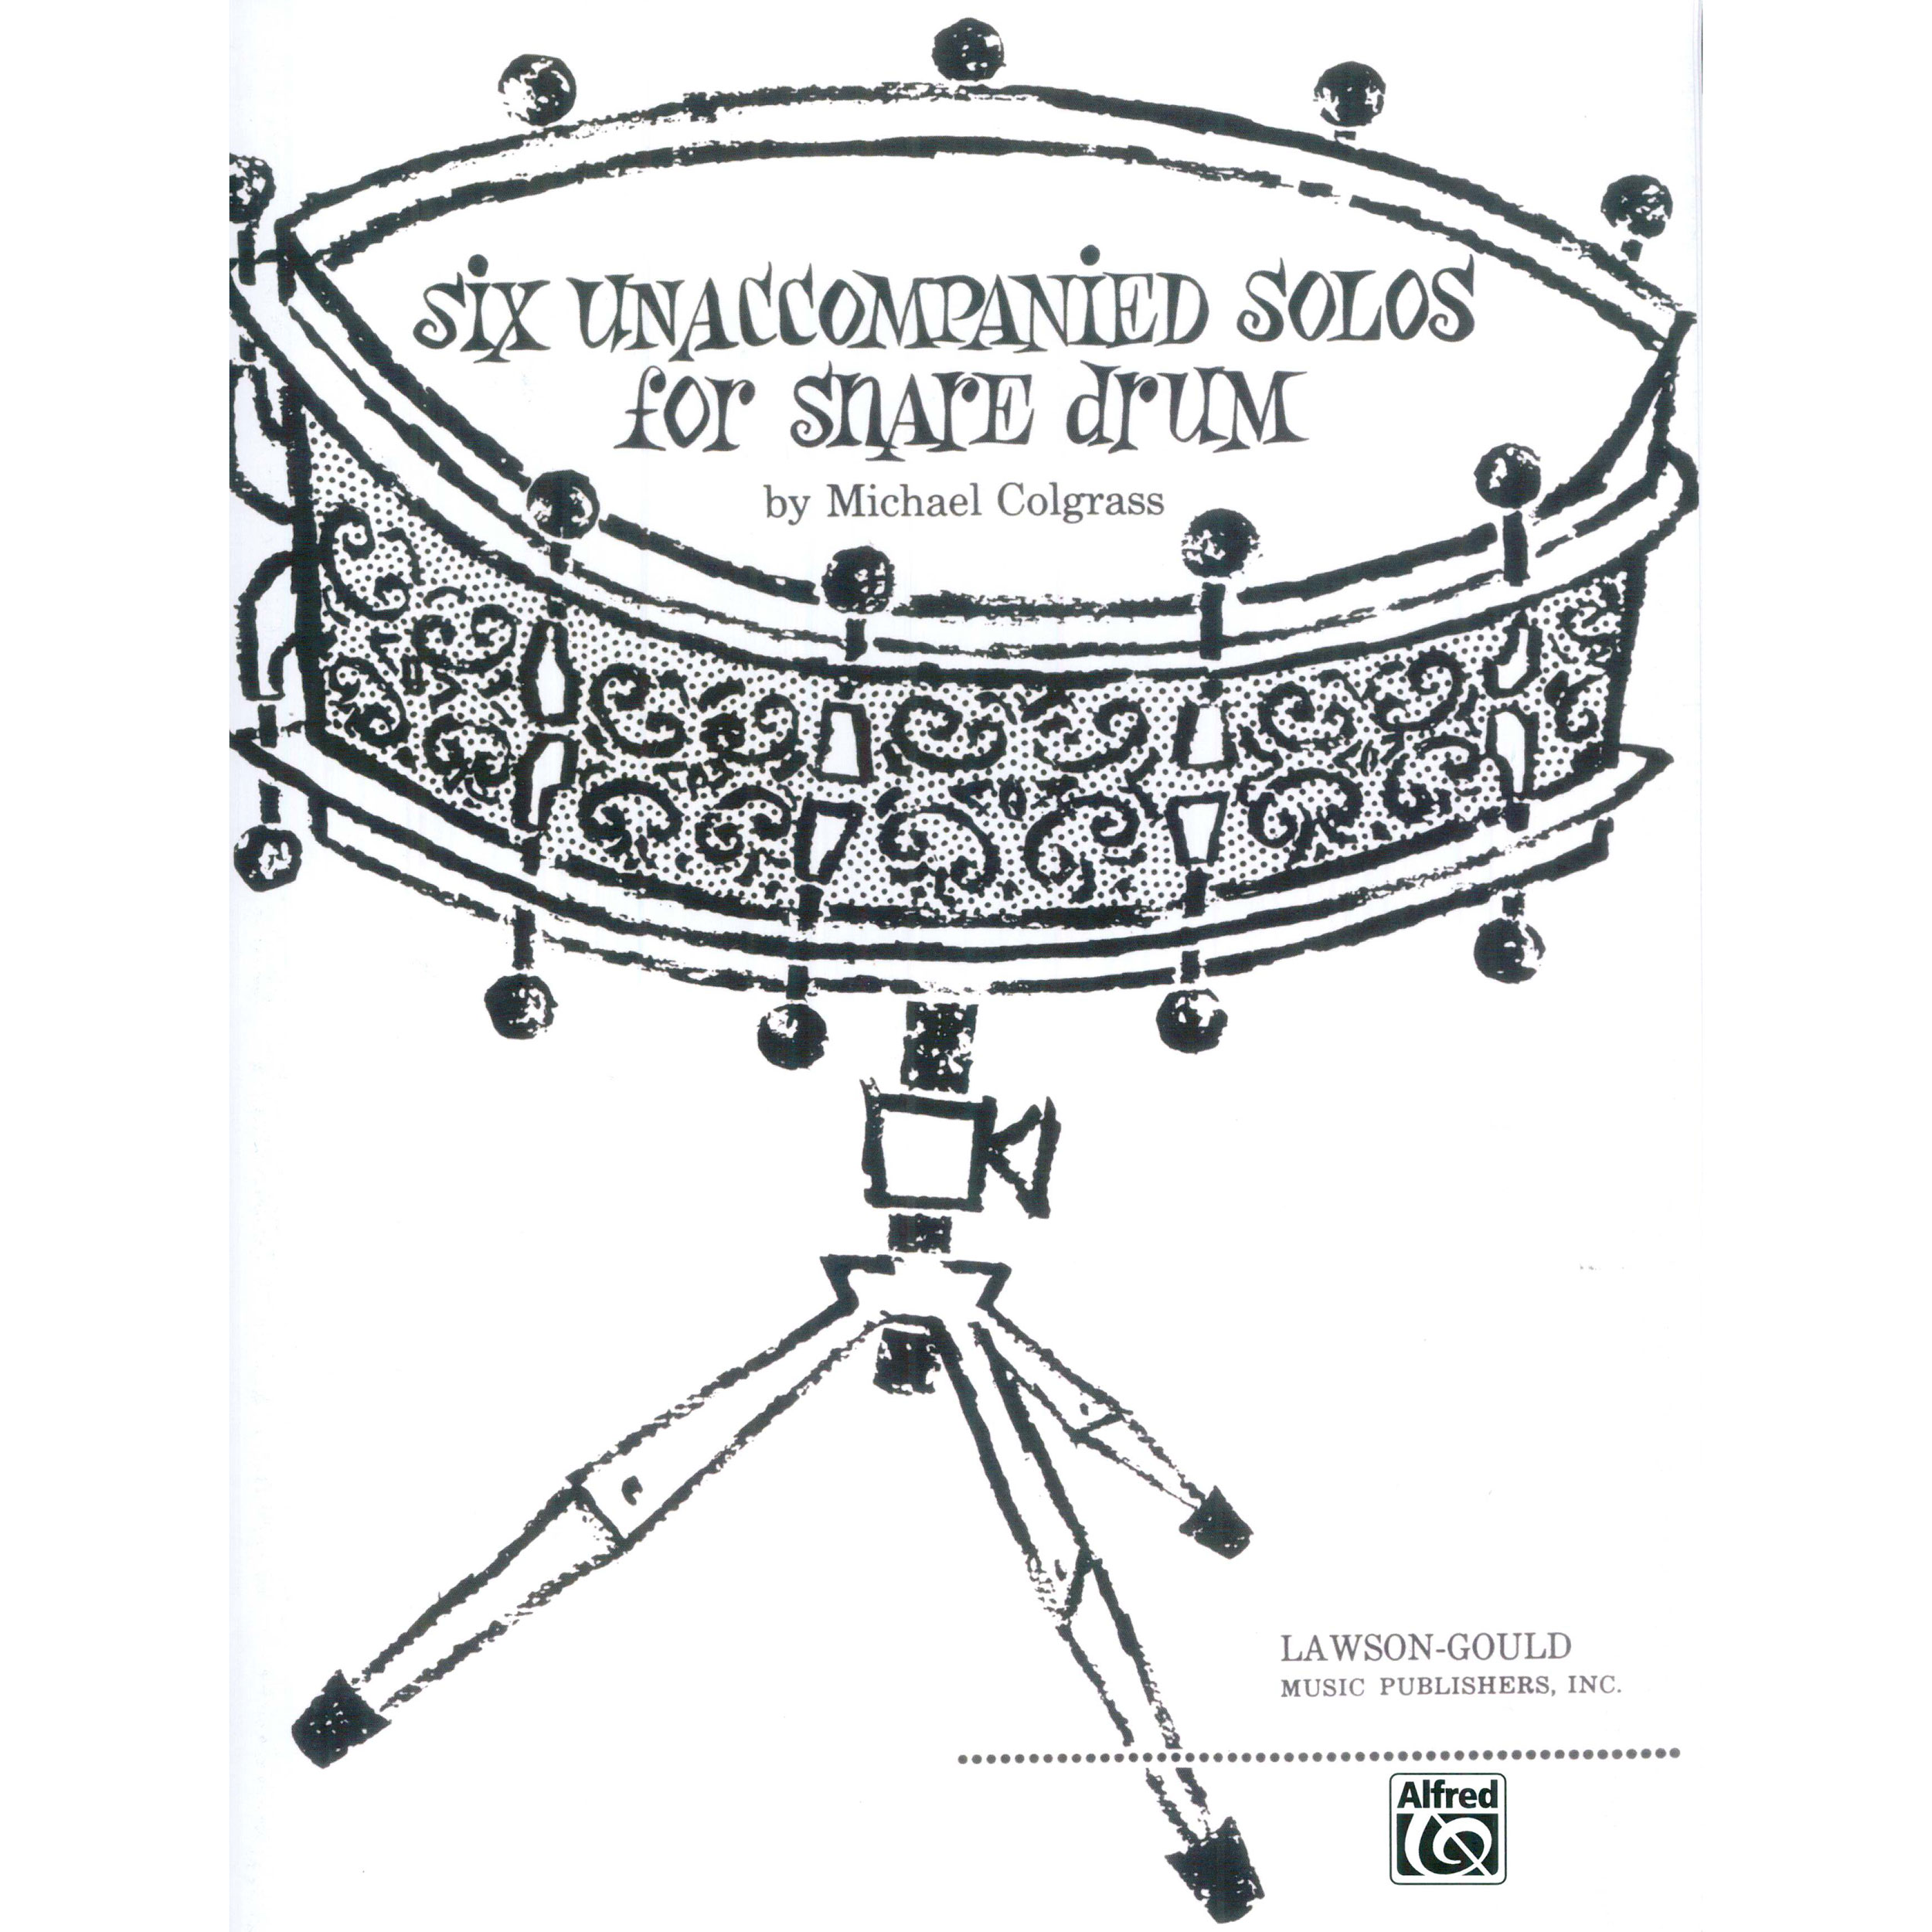 Six Unaccompanied Solos for Snare Drum by Michael Colgrass